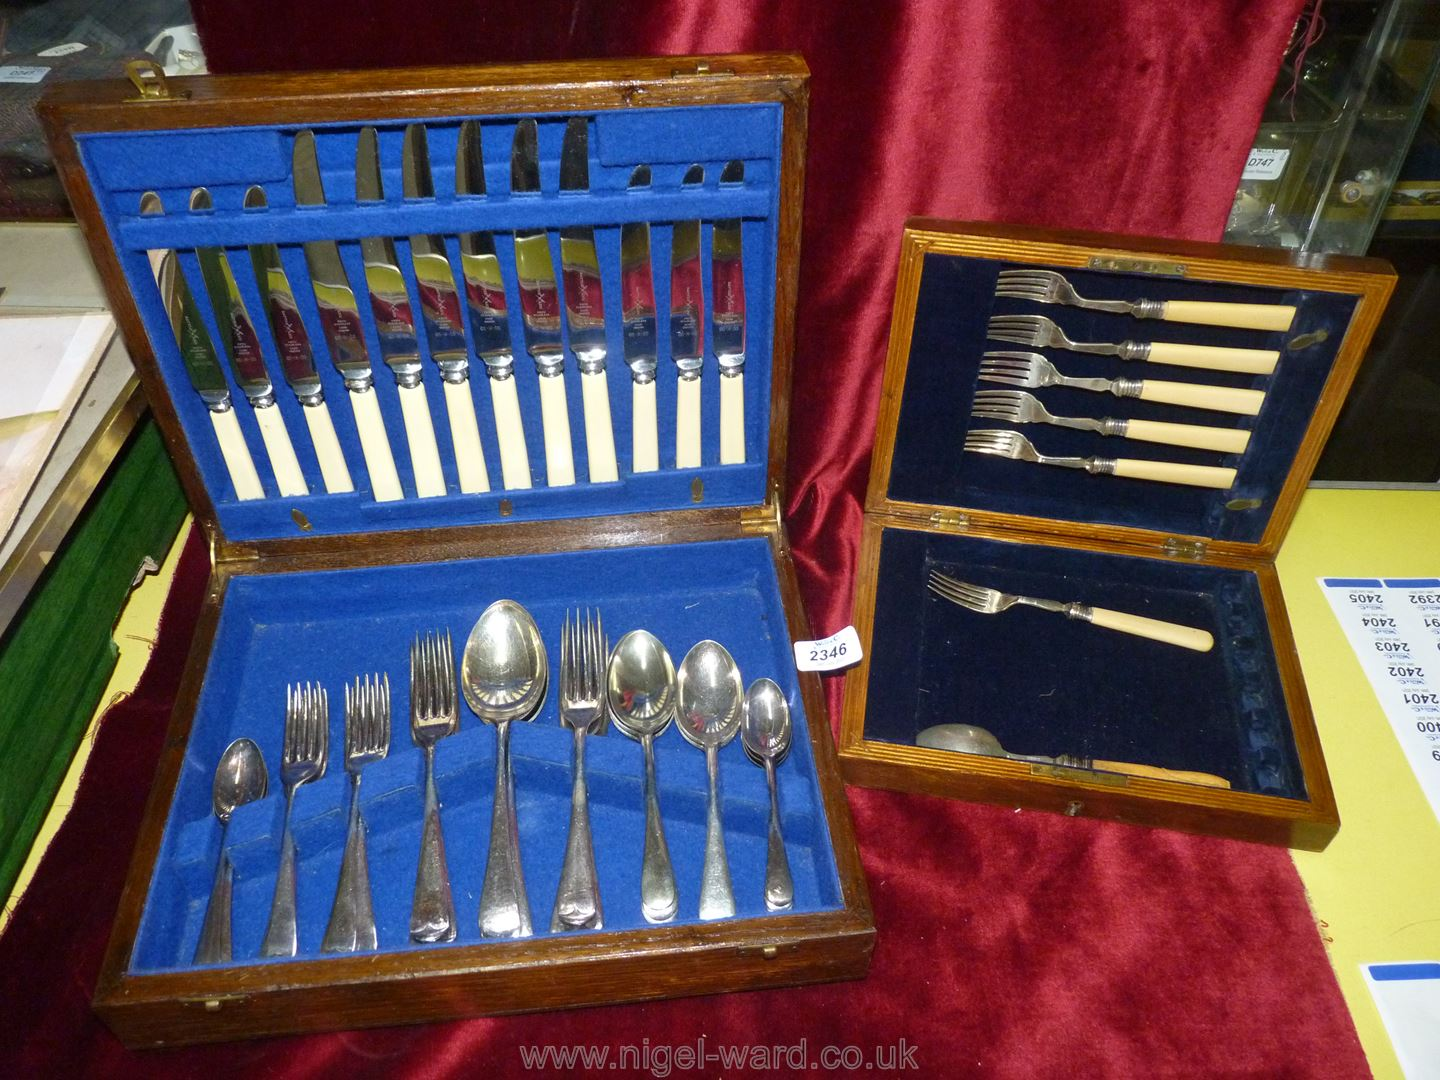 A wooden canteen of cutlery; Battle-Axe-Firth-Stainless hand ground six setting for knives, forks,